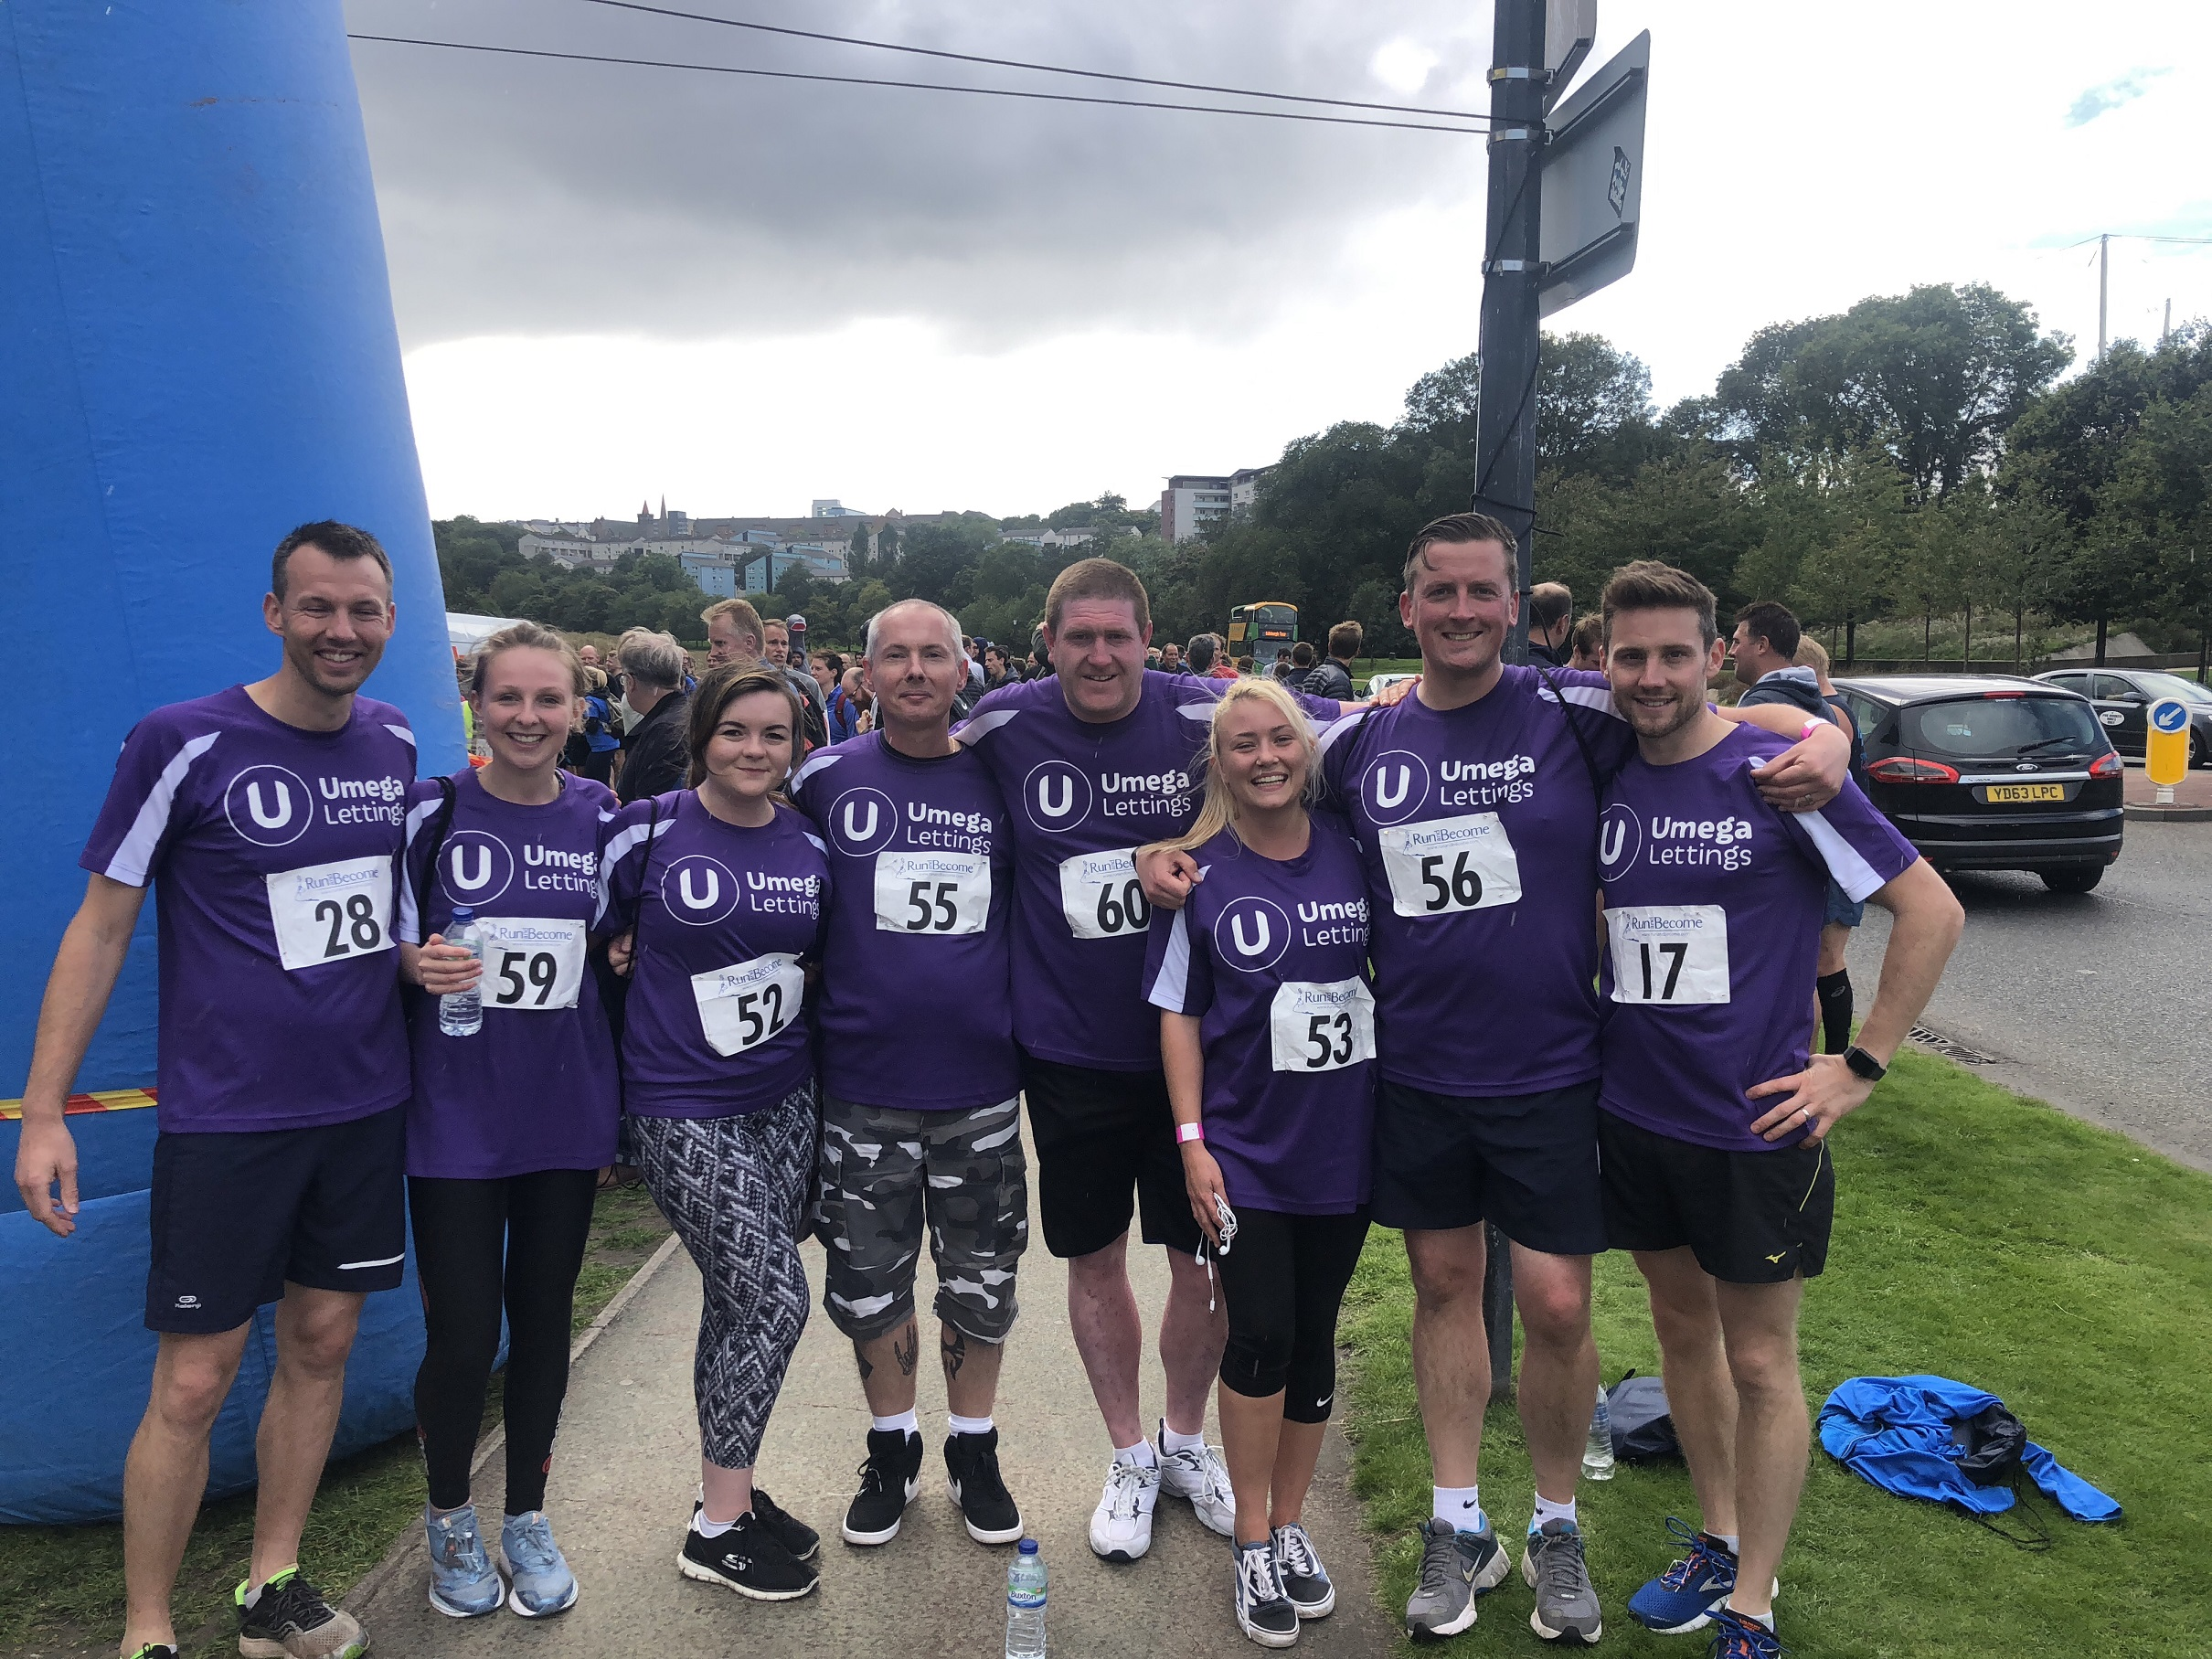 Umega Charity 5k Race - Edinburgh!